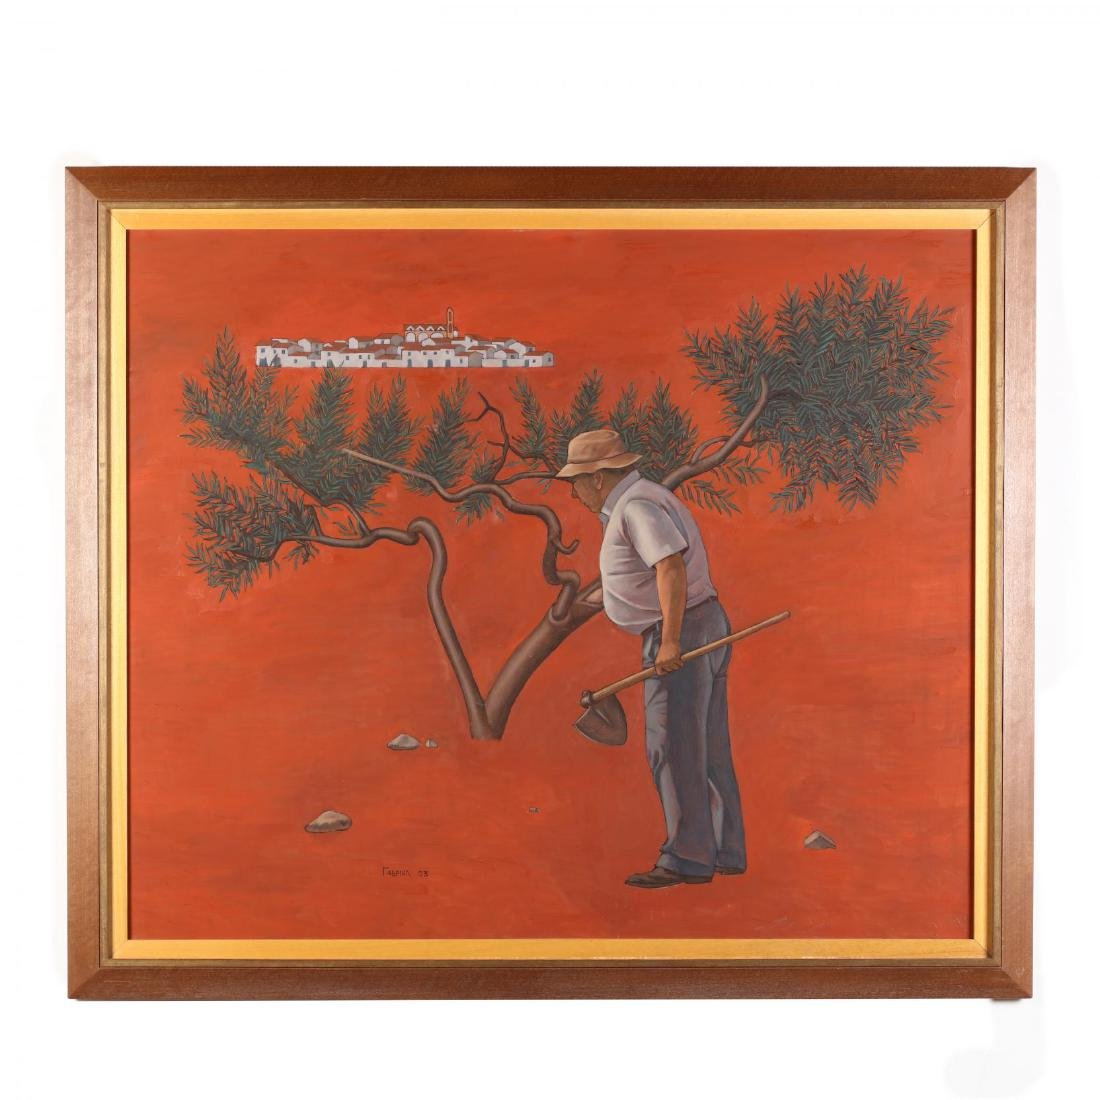 Large Greek or Cypriot Painting of an Olive Grower